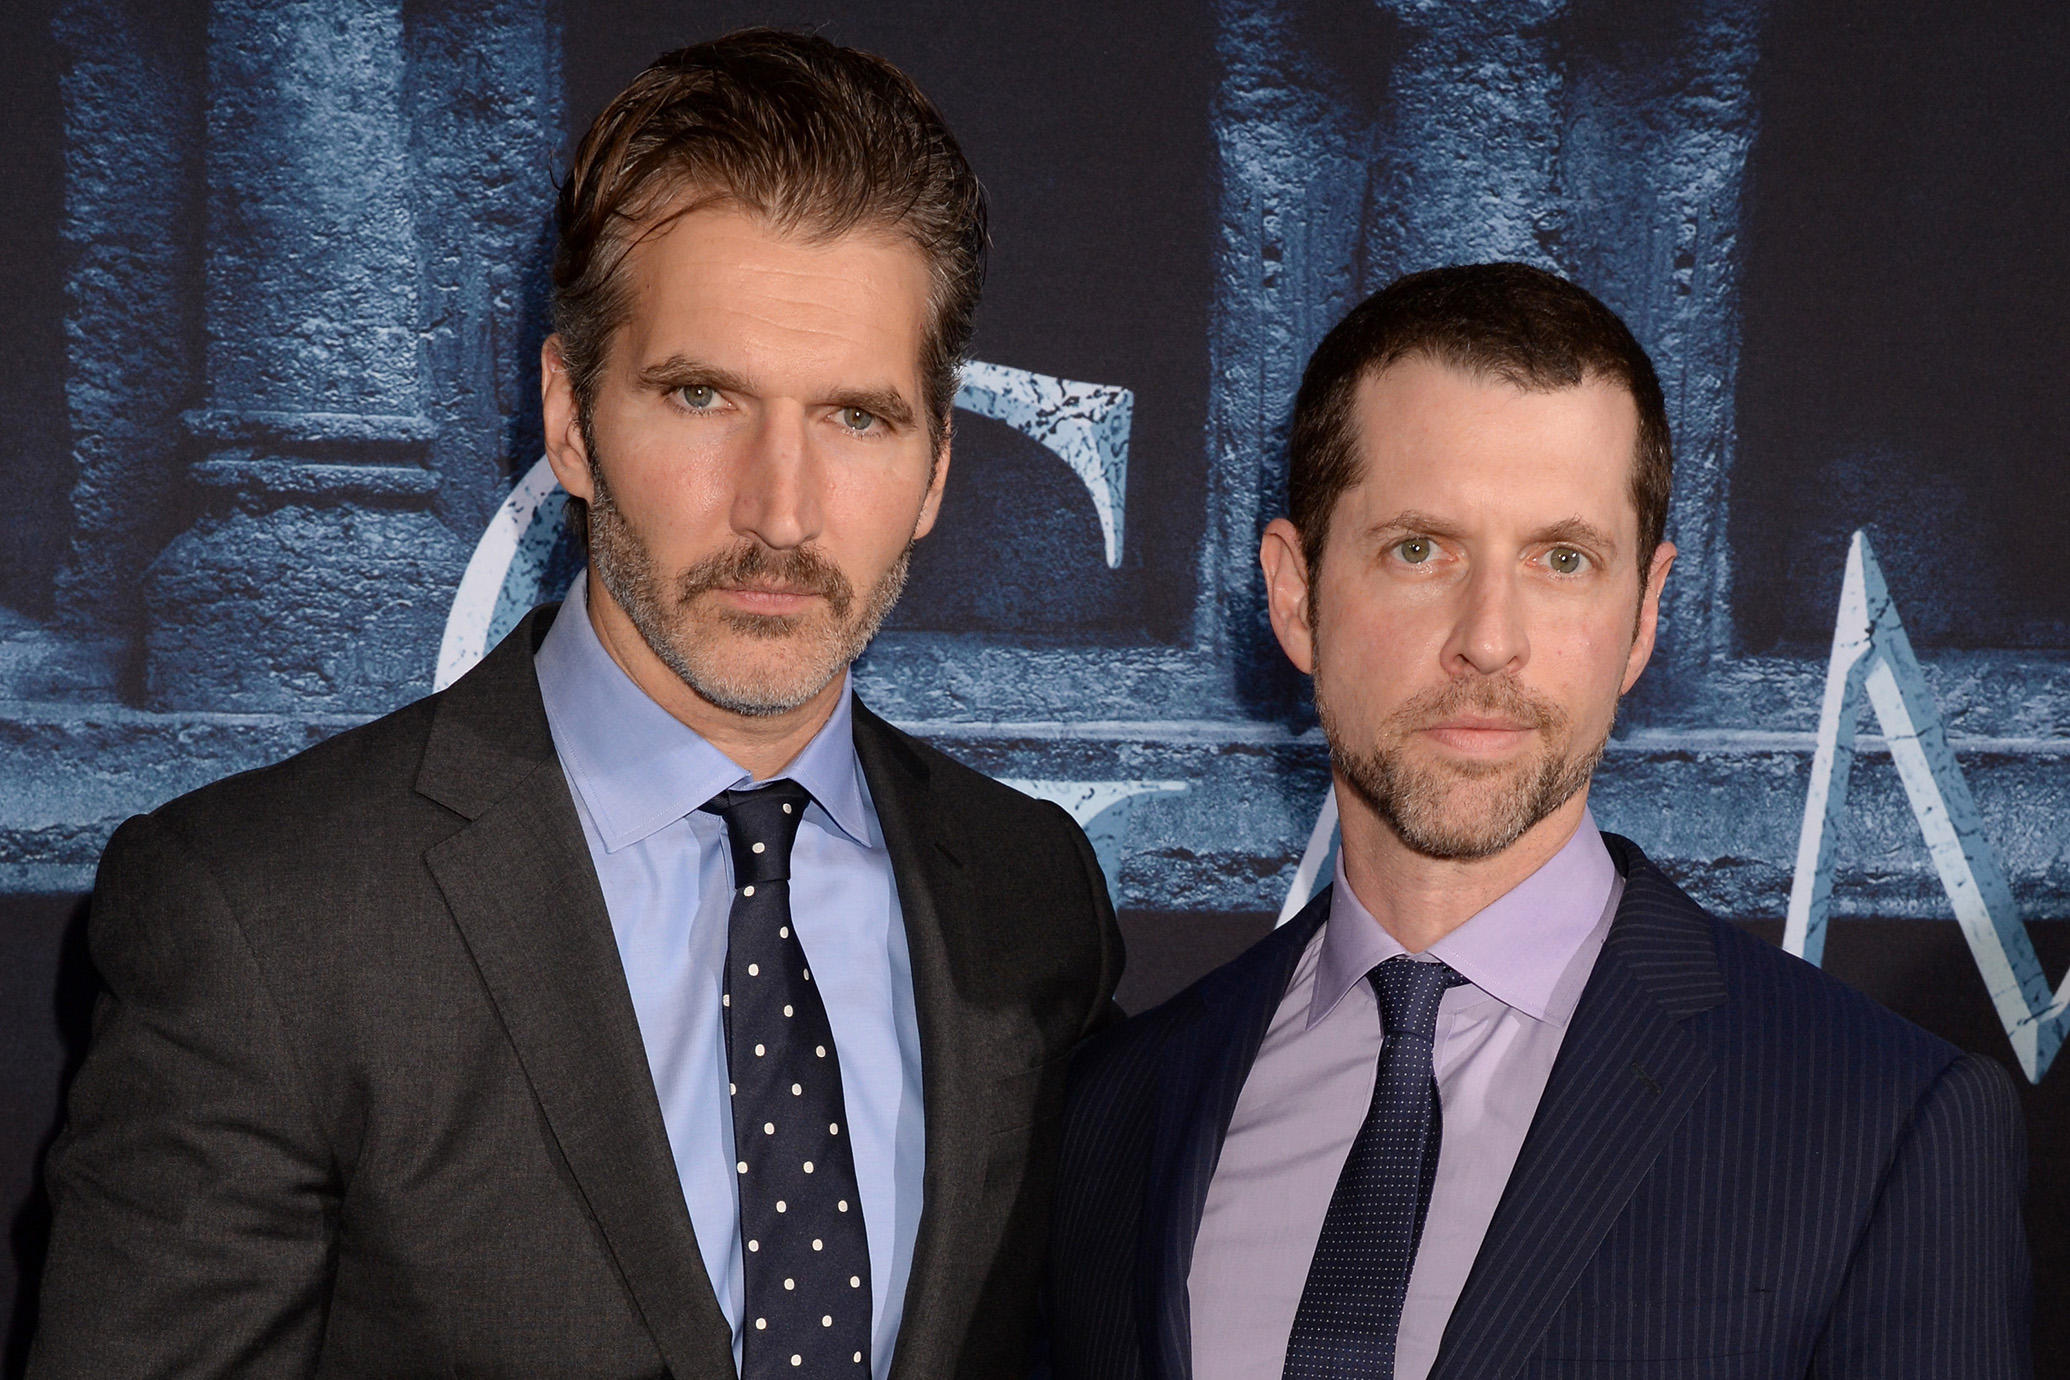 'Game of Thrones' showrunners David Benioff and D.B. Weiss set to write/produce all-new 'Star Wars' films